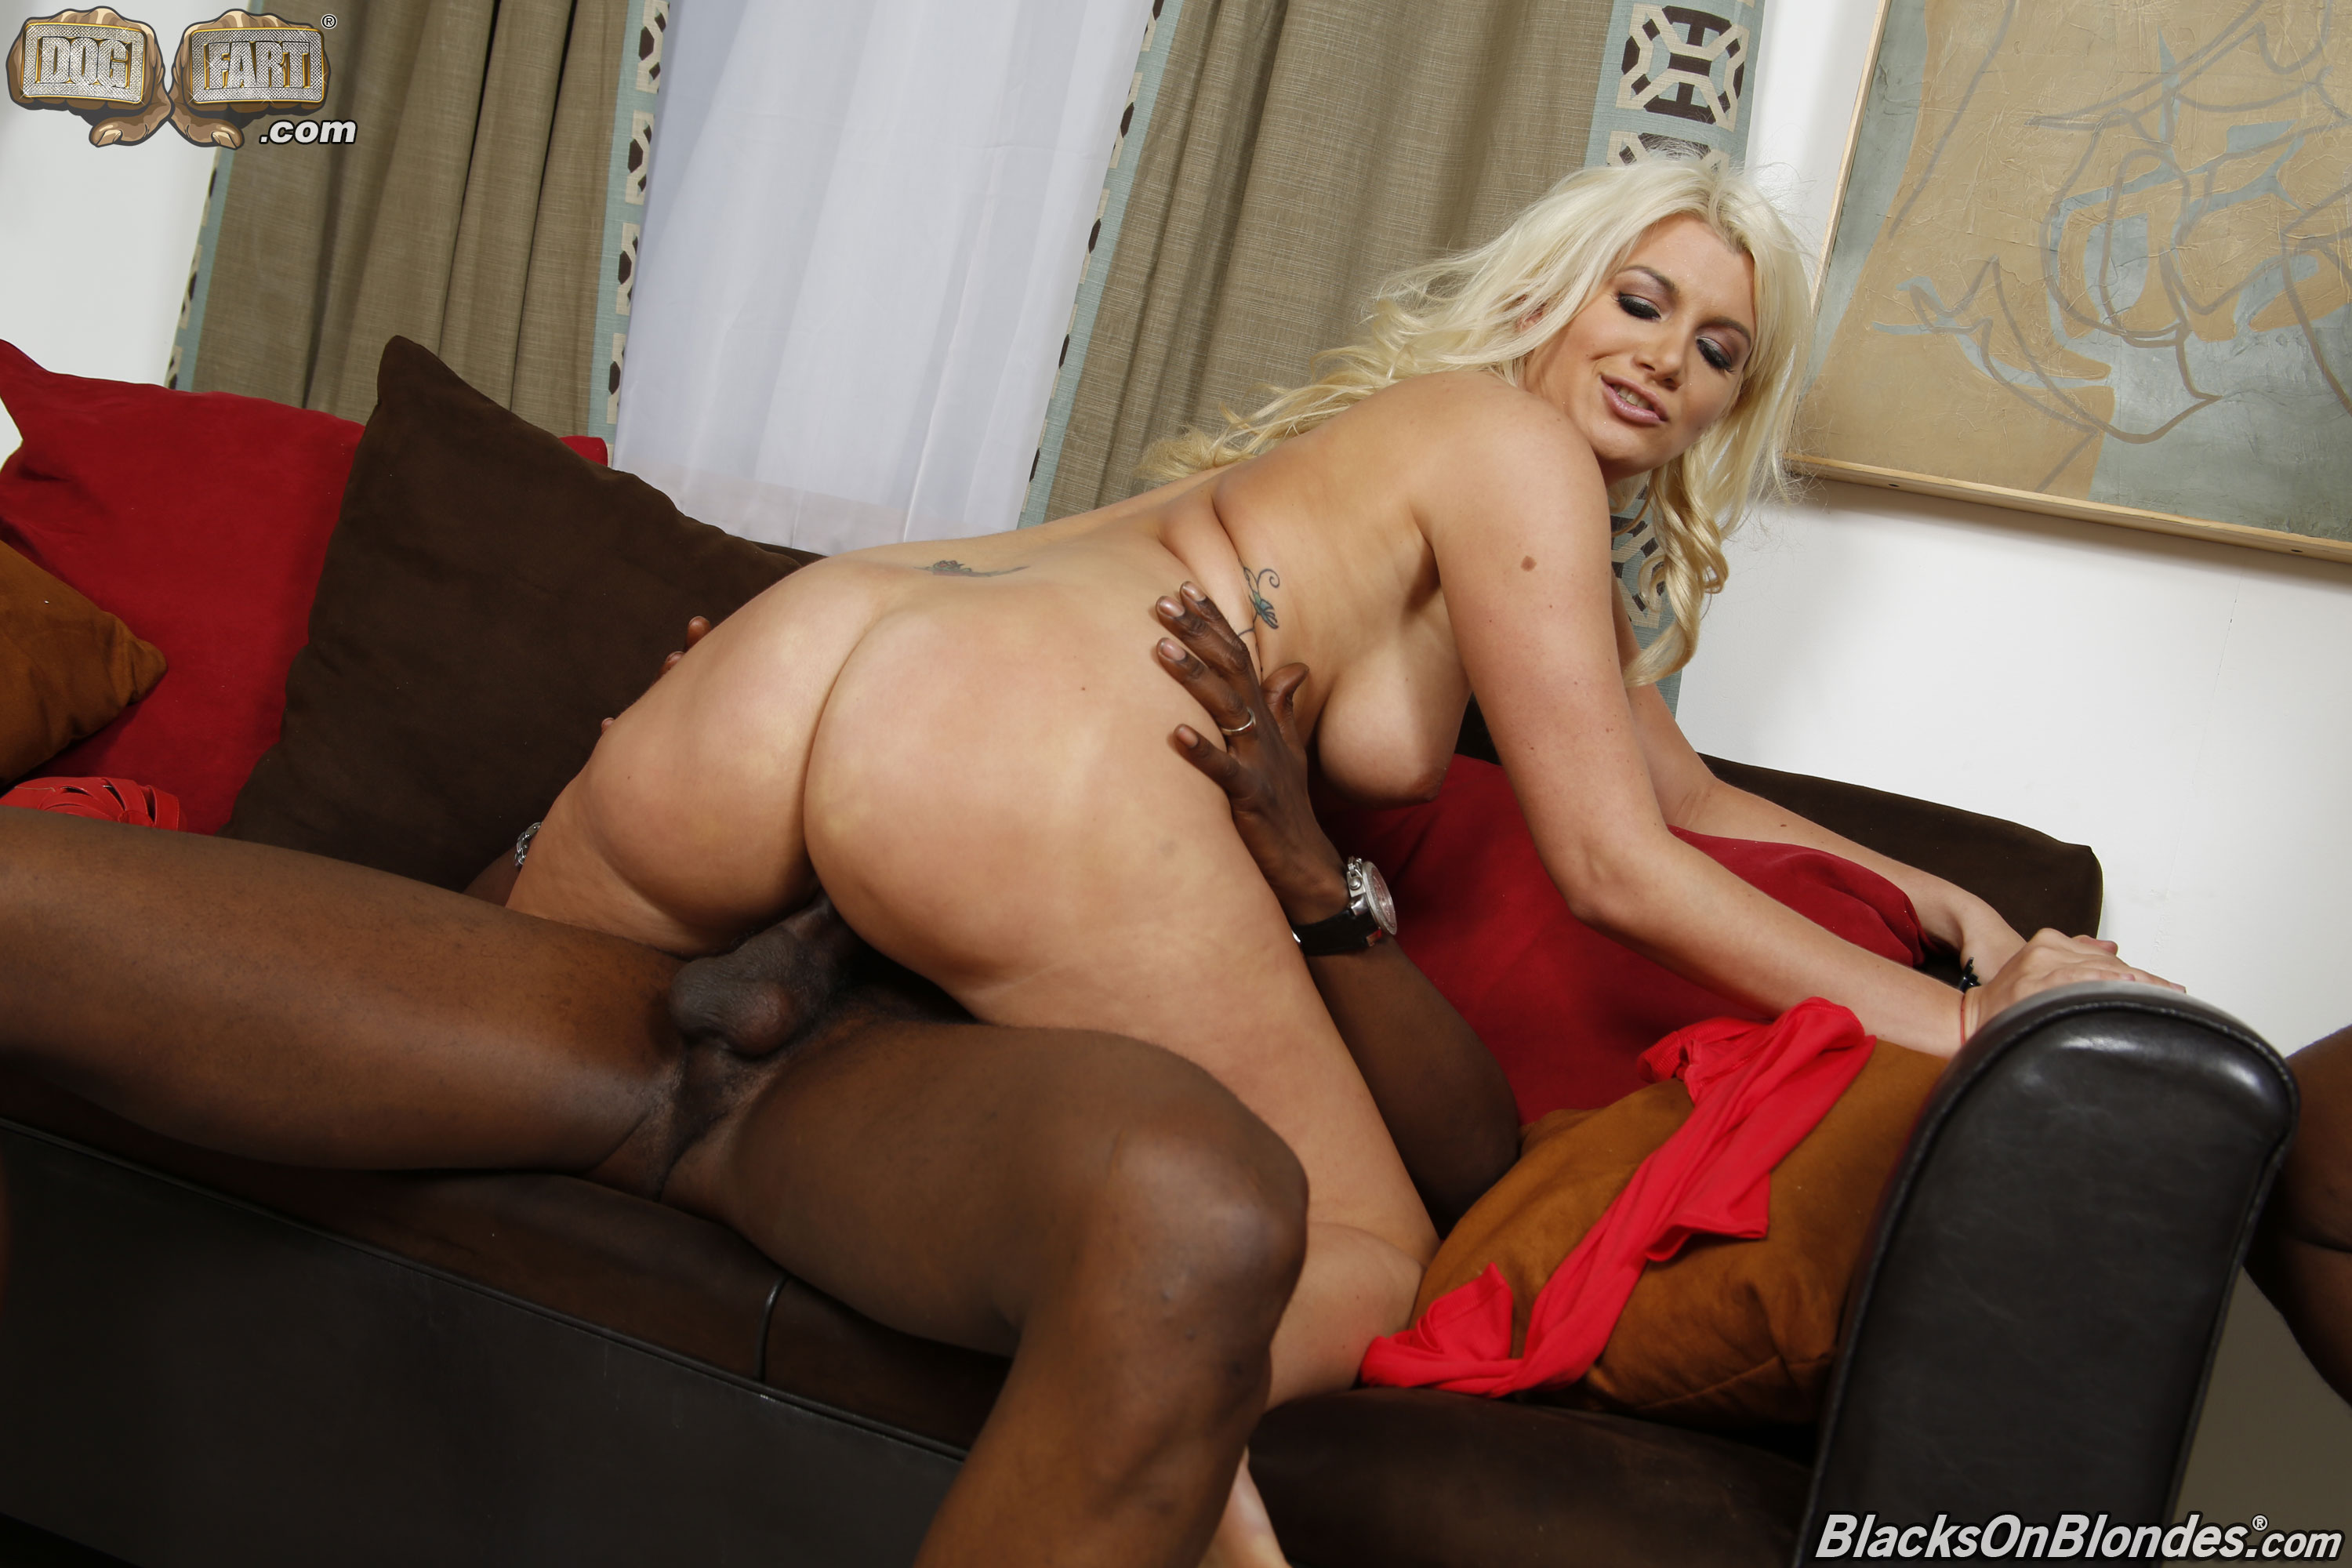 That Blacks on blondes anal trailers excellent idea